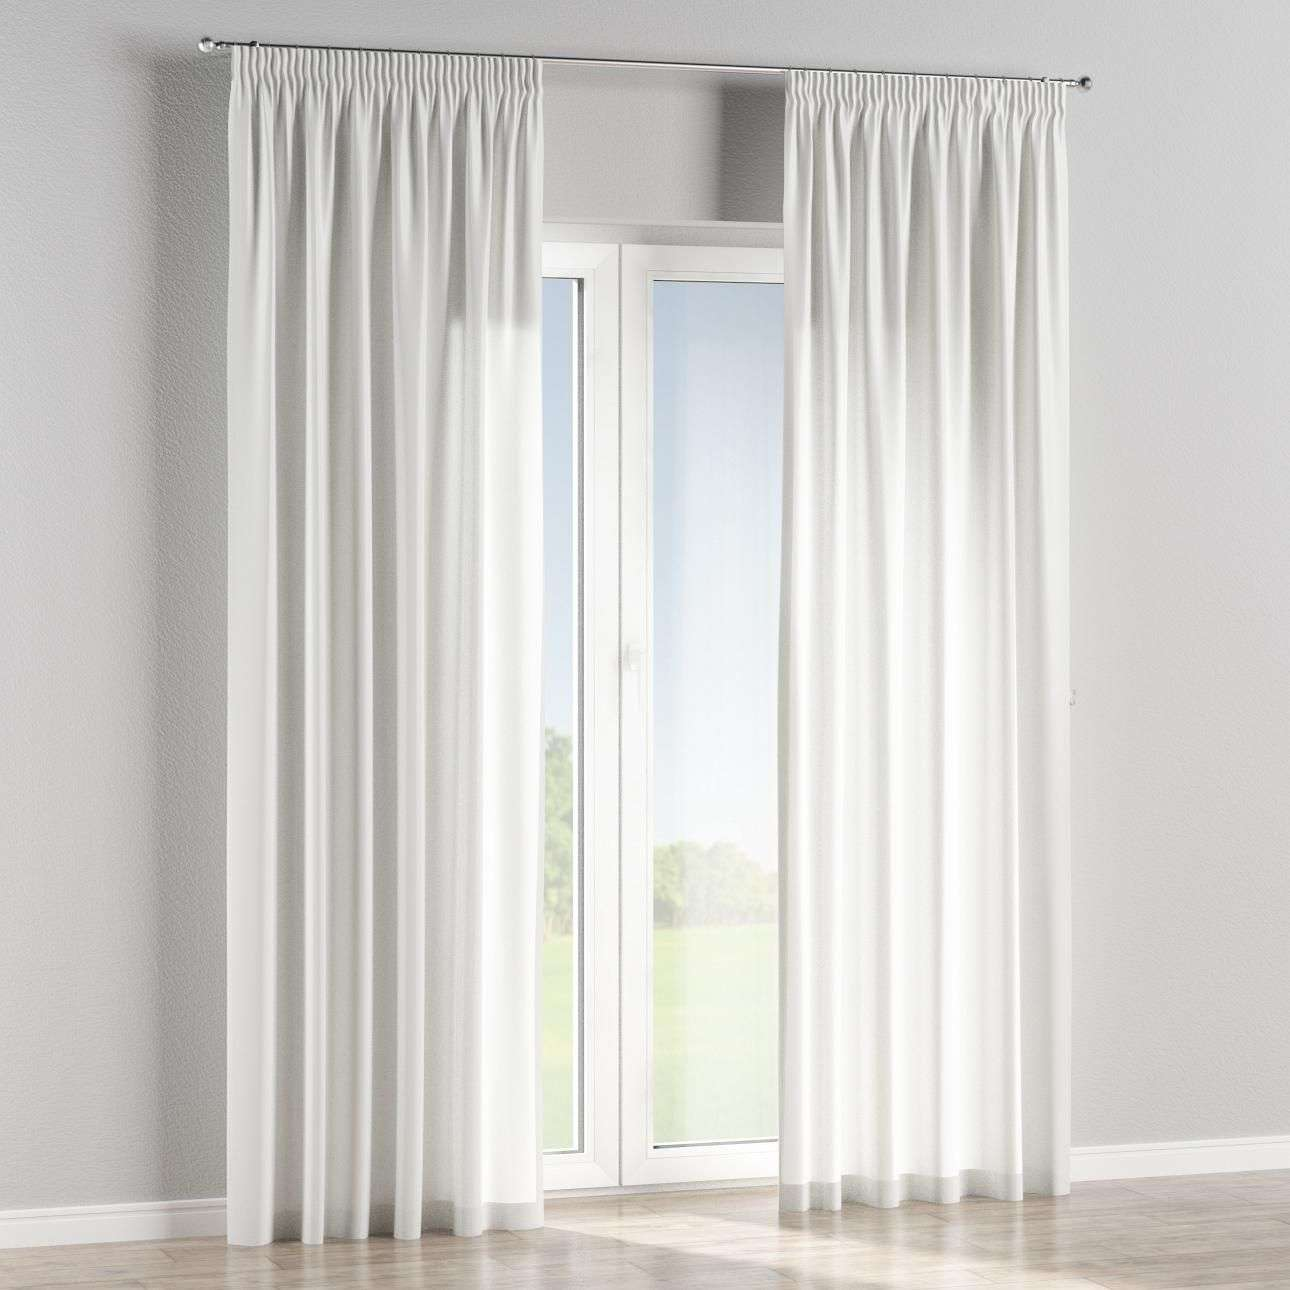 Pencil pleat curtains in collection Rustica, fabric: 138-22